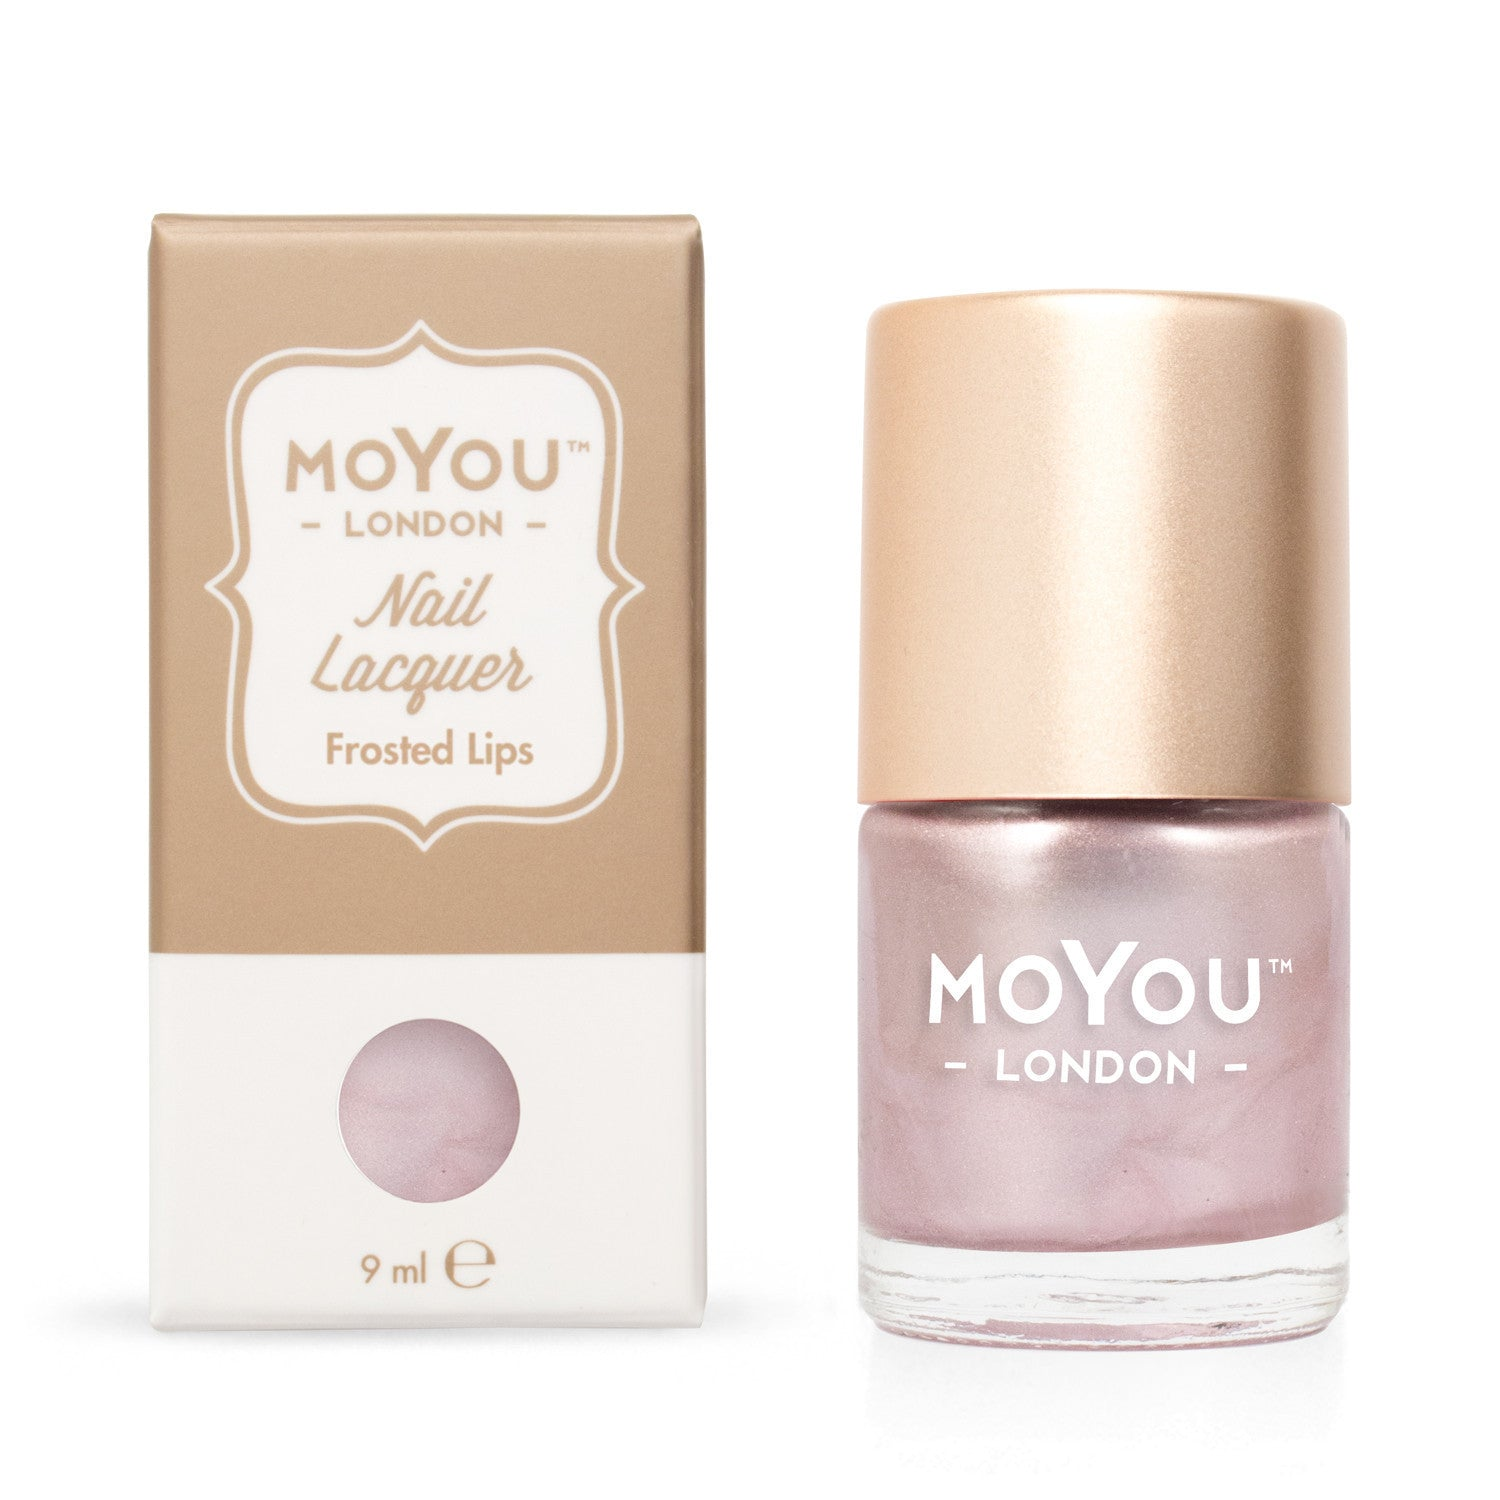 Moyou London / Stamping Nail Lacquer / Frosted Lips - Metallic Pink Gold Stamping Polish